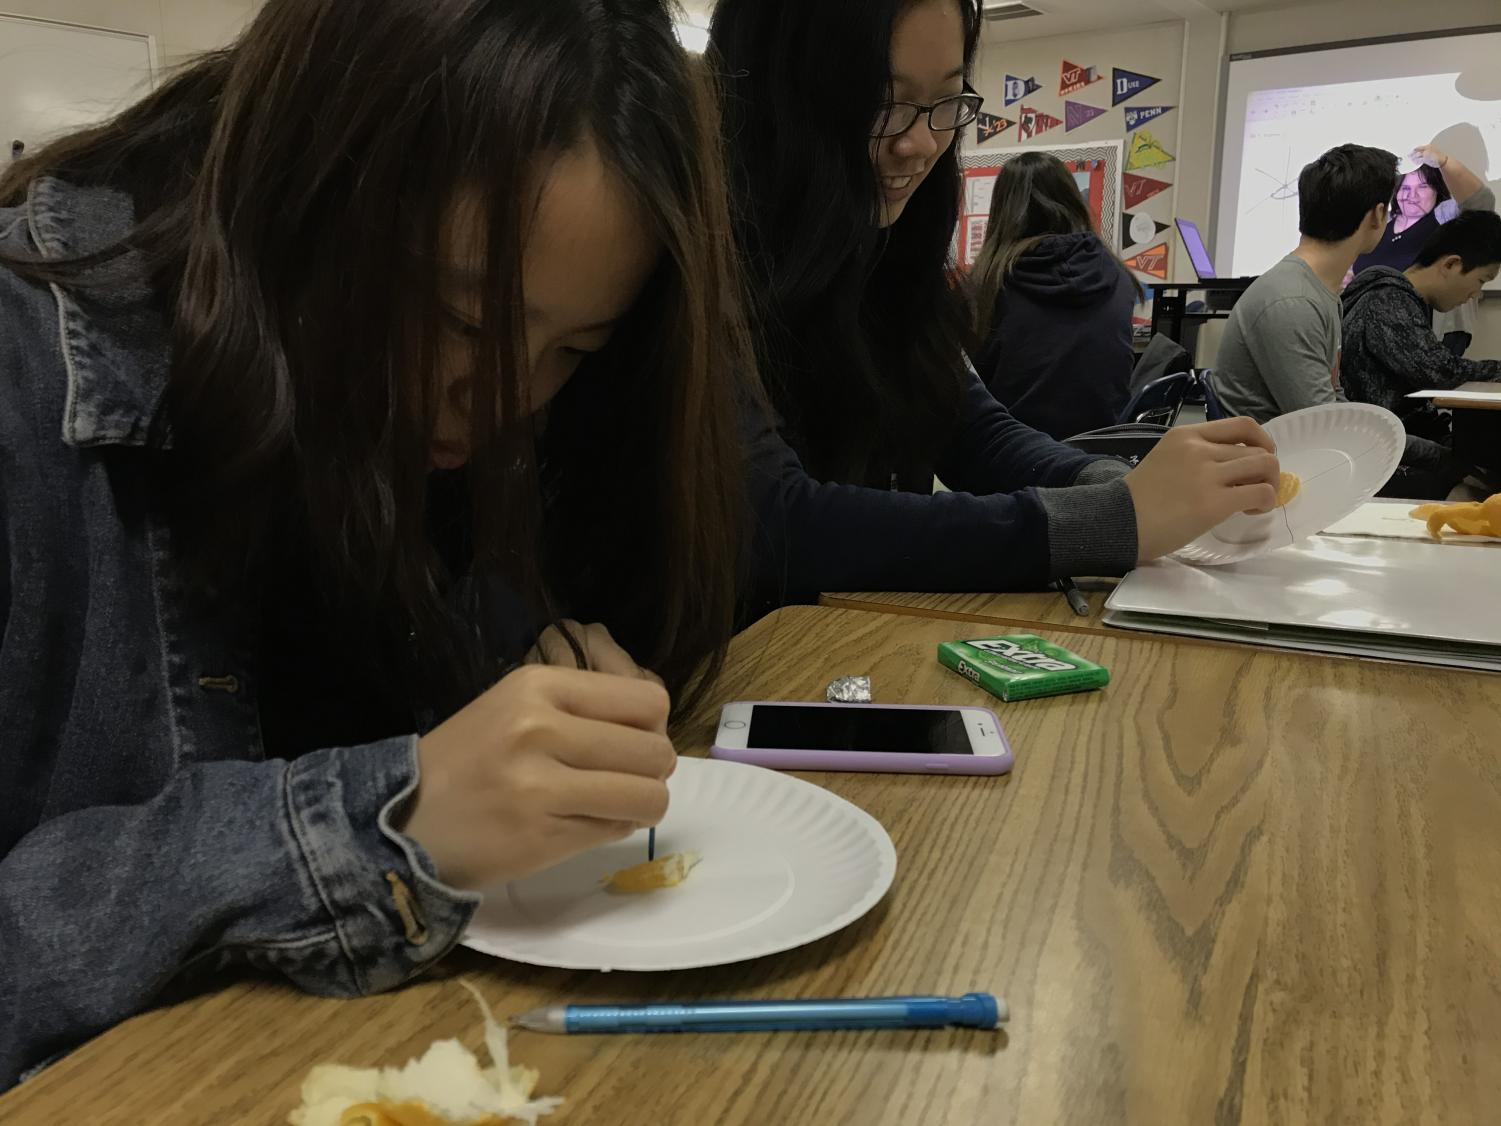 Senior Tiffany Chen (left) punctures a plate with a toothpick while senior Christina Ni (right) smiles as she understands what's going on. On this day, students used orange slices, which is just one of the many different types of food Quarry has used in her classroom.